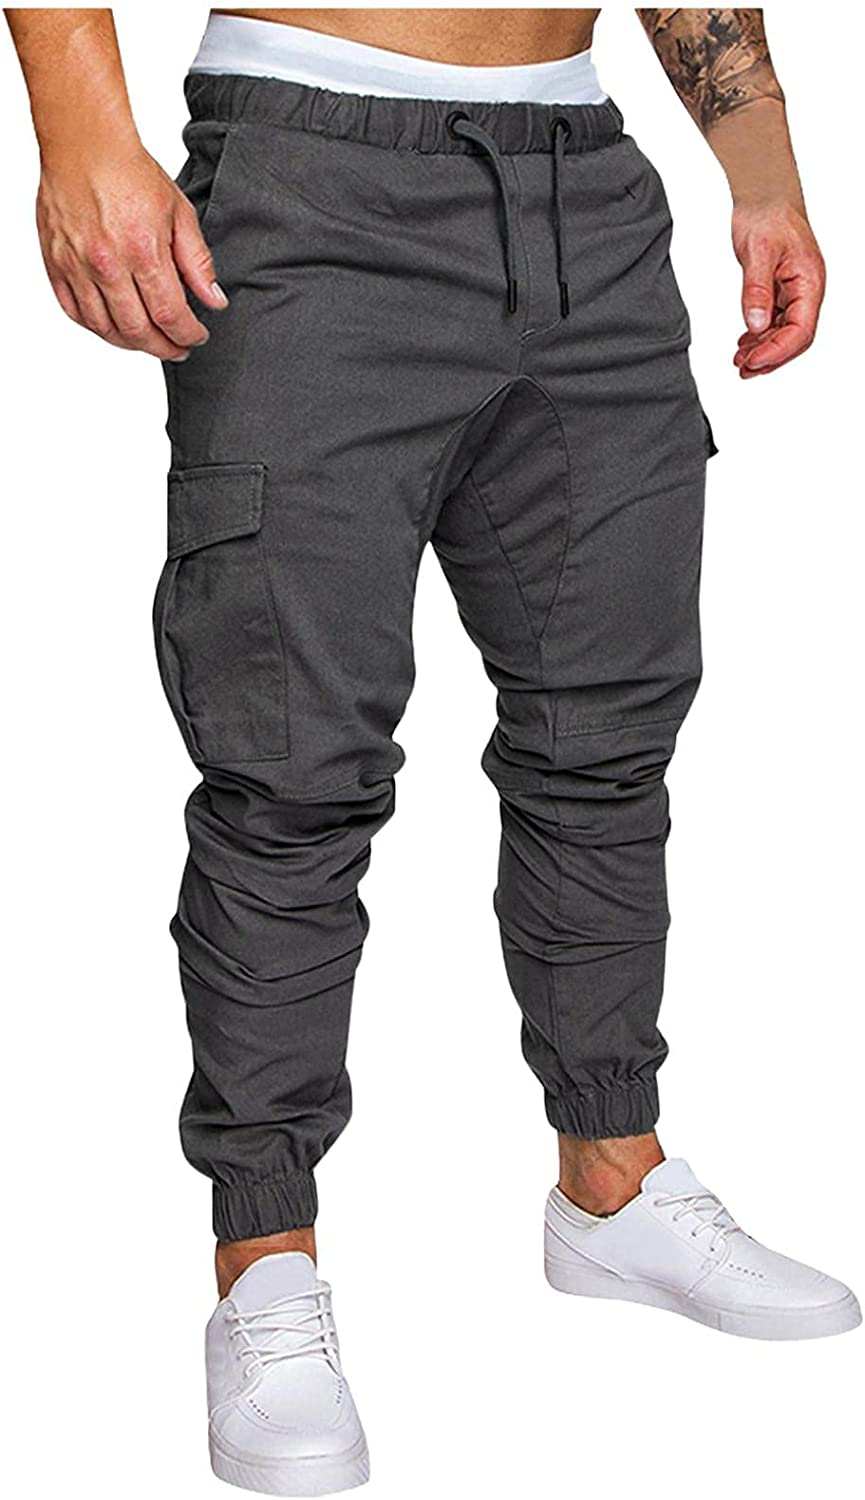 Huangse Mens Cargo Pants Casual Classic Fit Drawstring Trousers Summer Joggers Work Outfit with Pockets